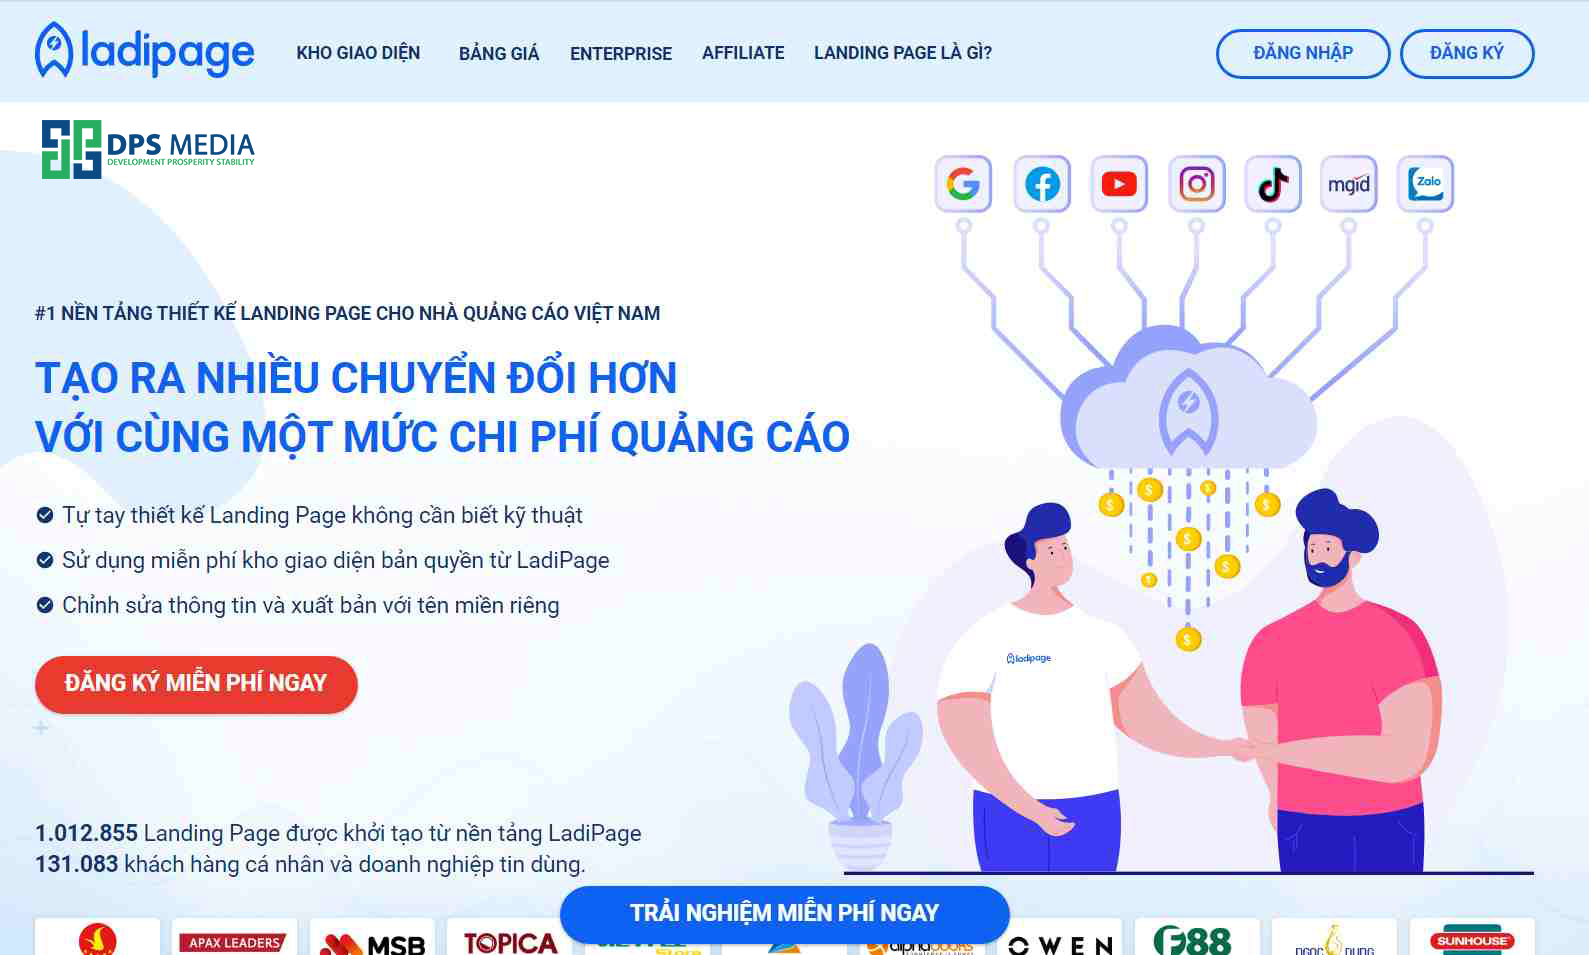 Thiết kế landing page miễn phí bằng laidipage